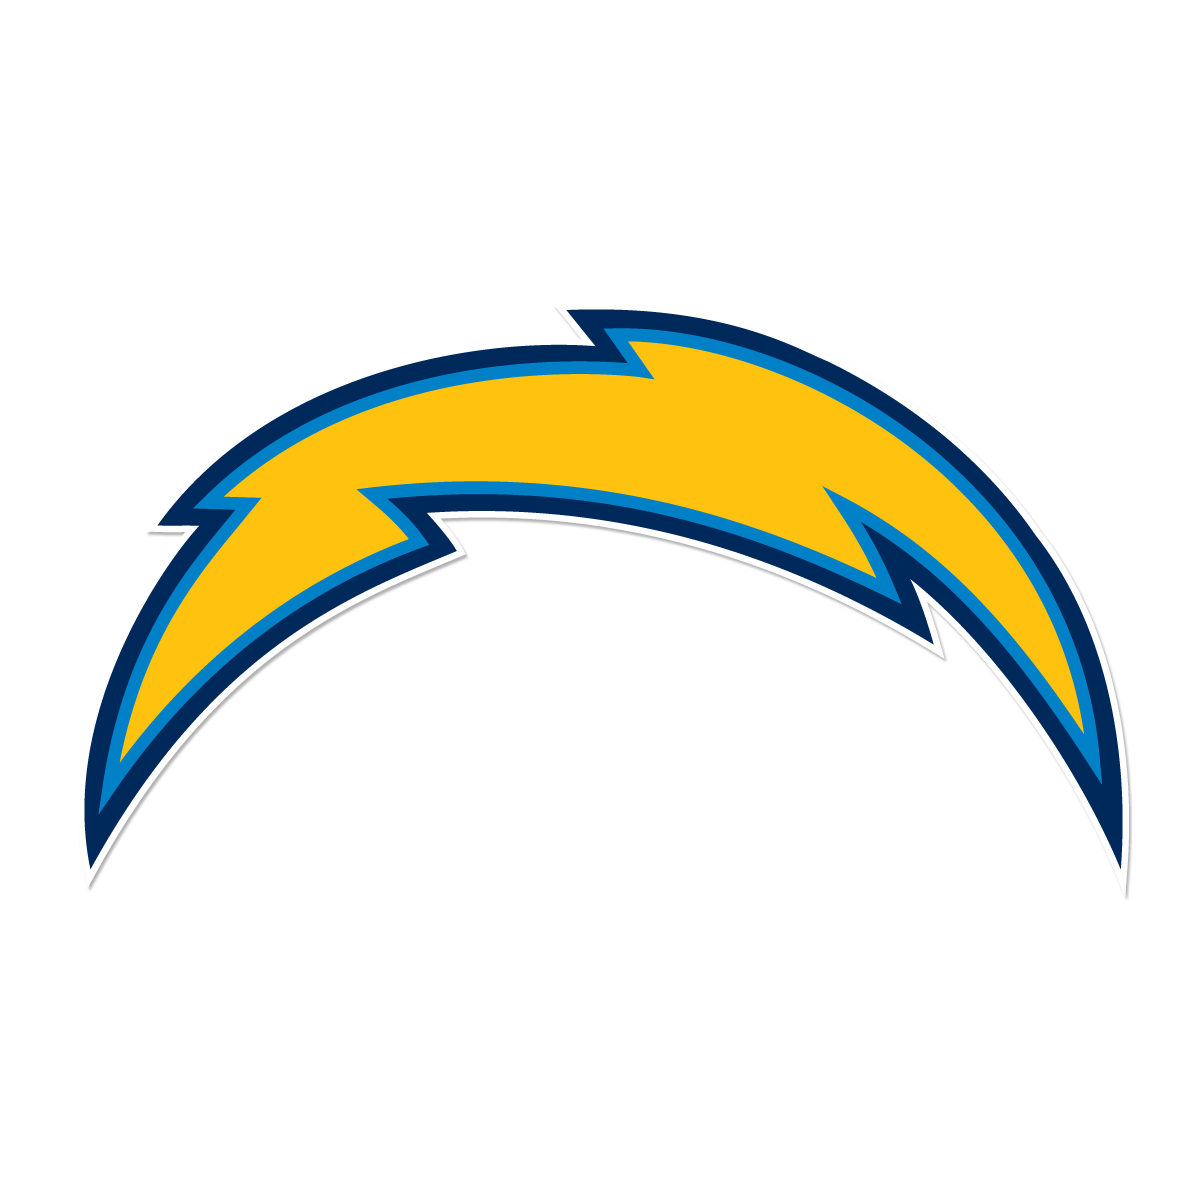 San Diego Chargers Bolt Up: NFL Indianapolis Colts